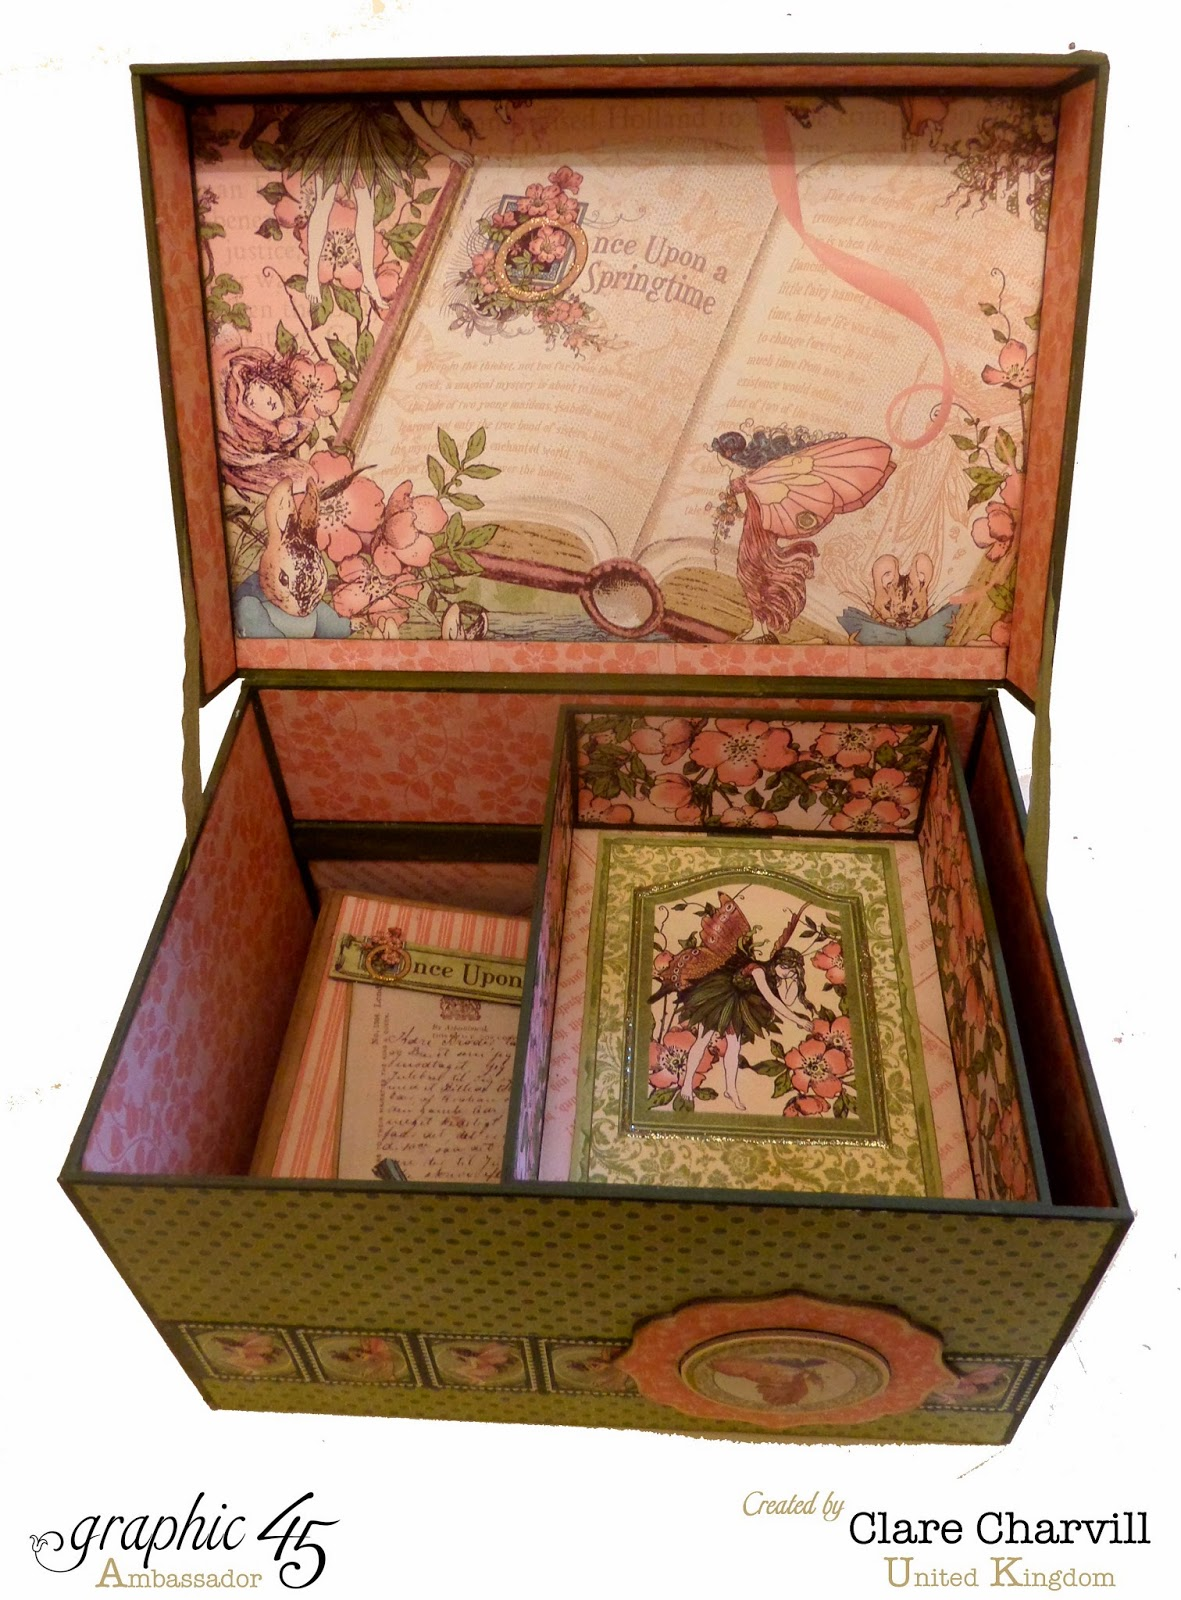 Once Upon a Springtime This N That Box Interior Clare Charvill Graphic 45